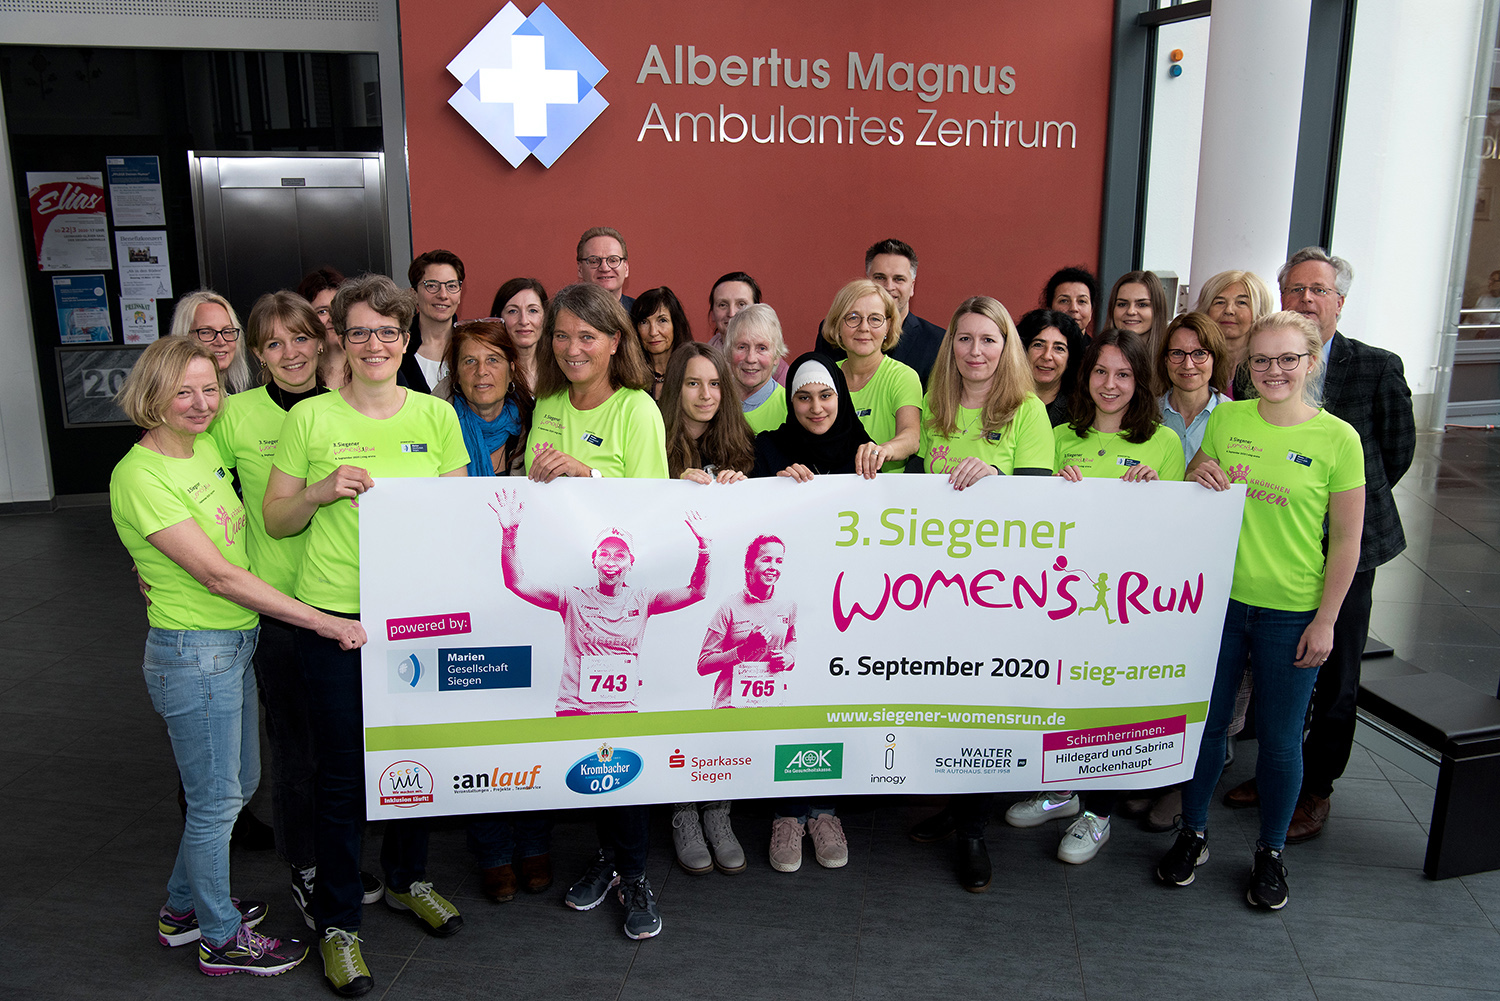 Start zum 3. Siegener Women's Run!